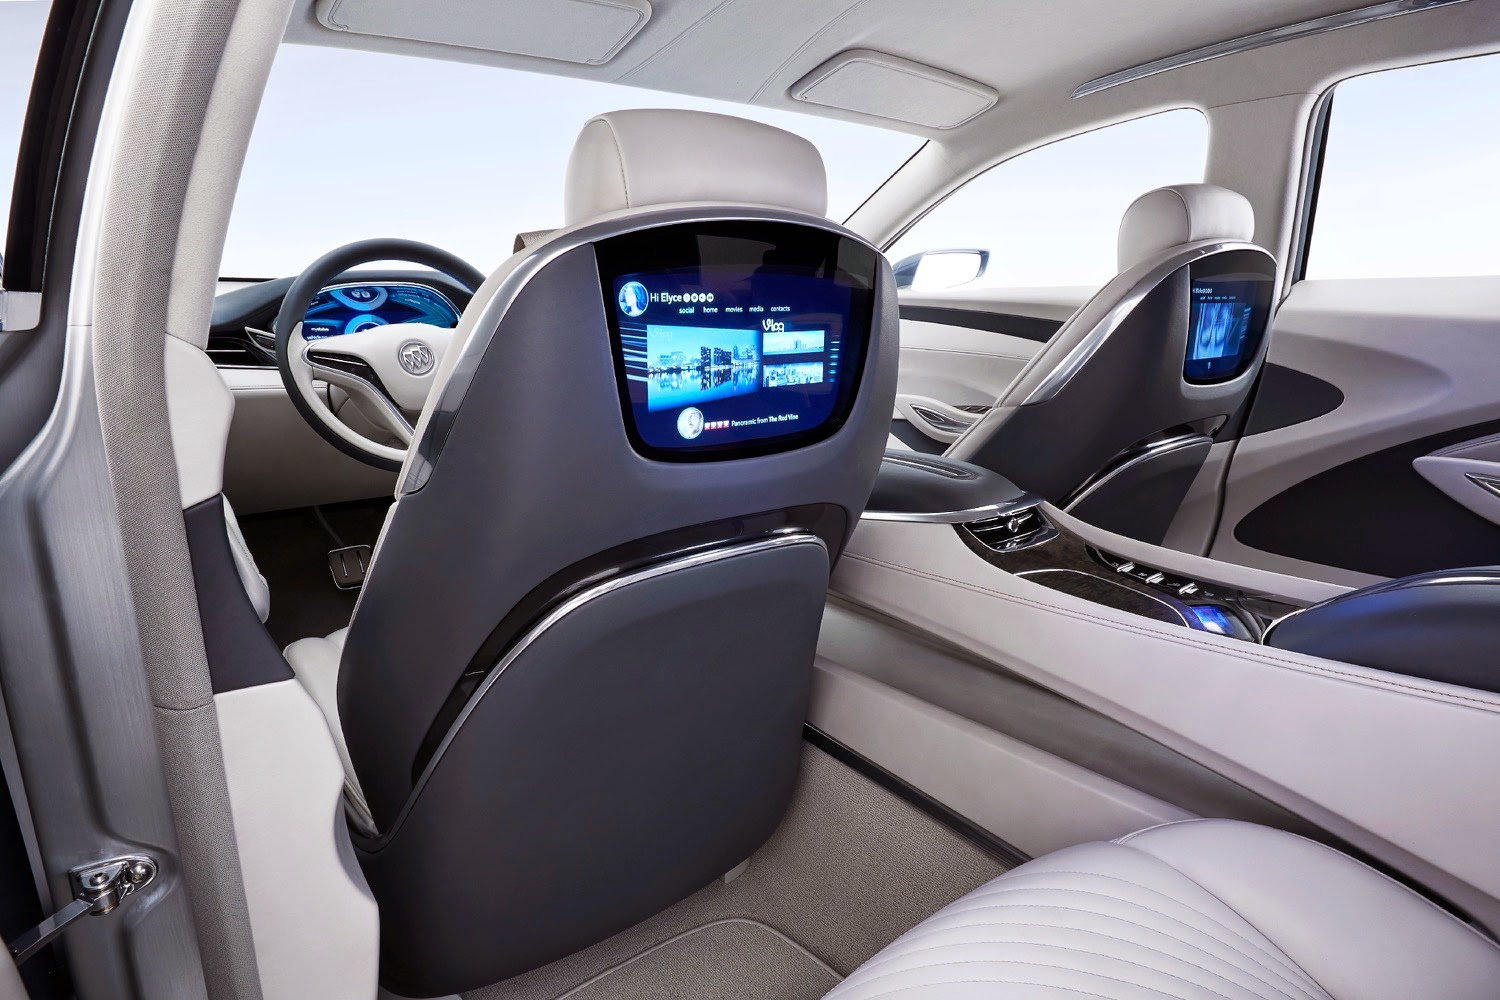 Meet the 2015 Buick Avenir Concept Vehicle